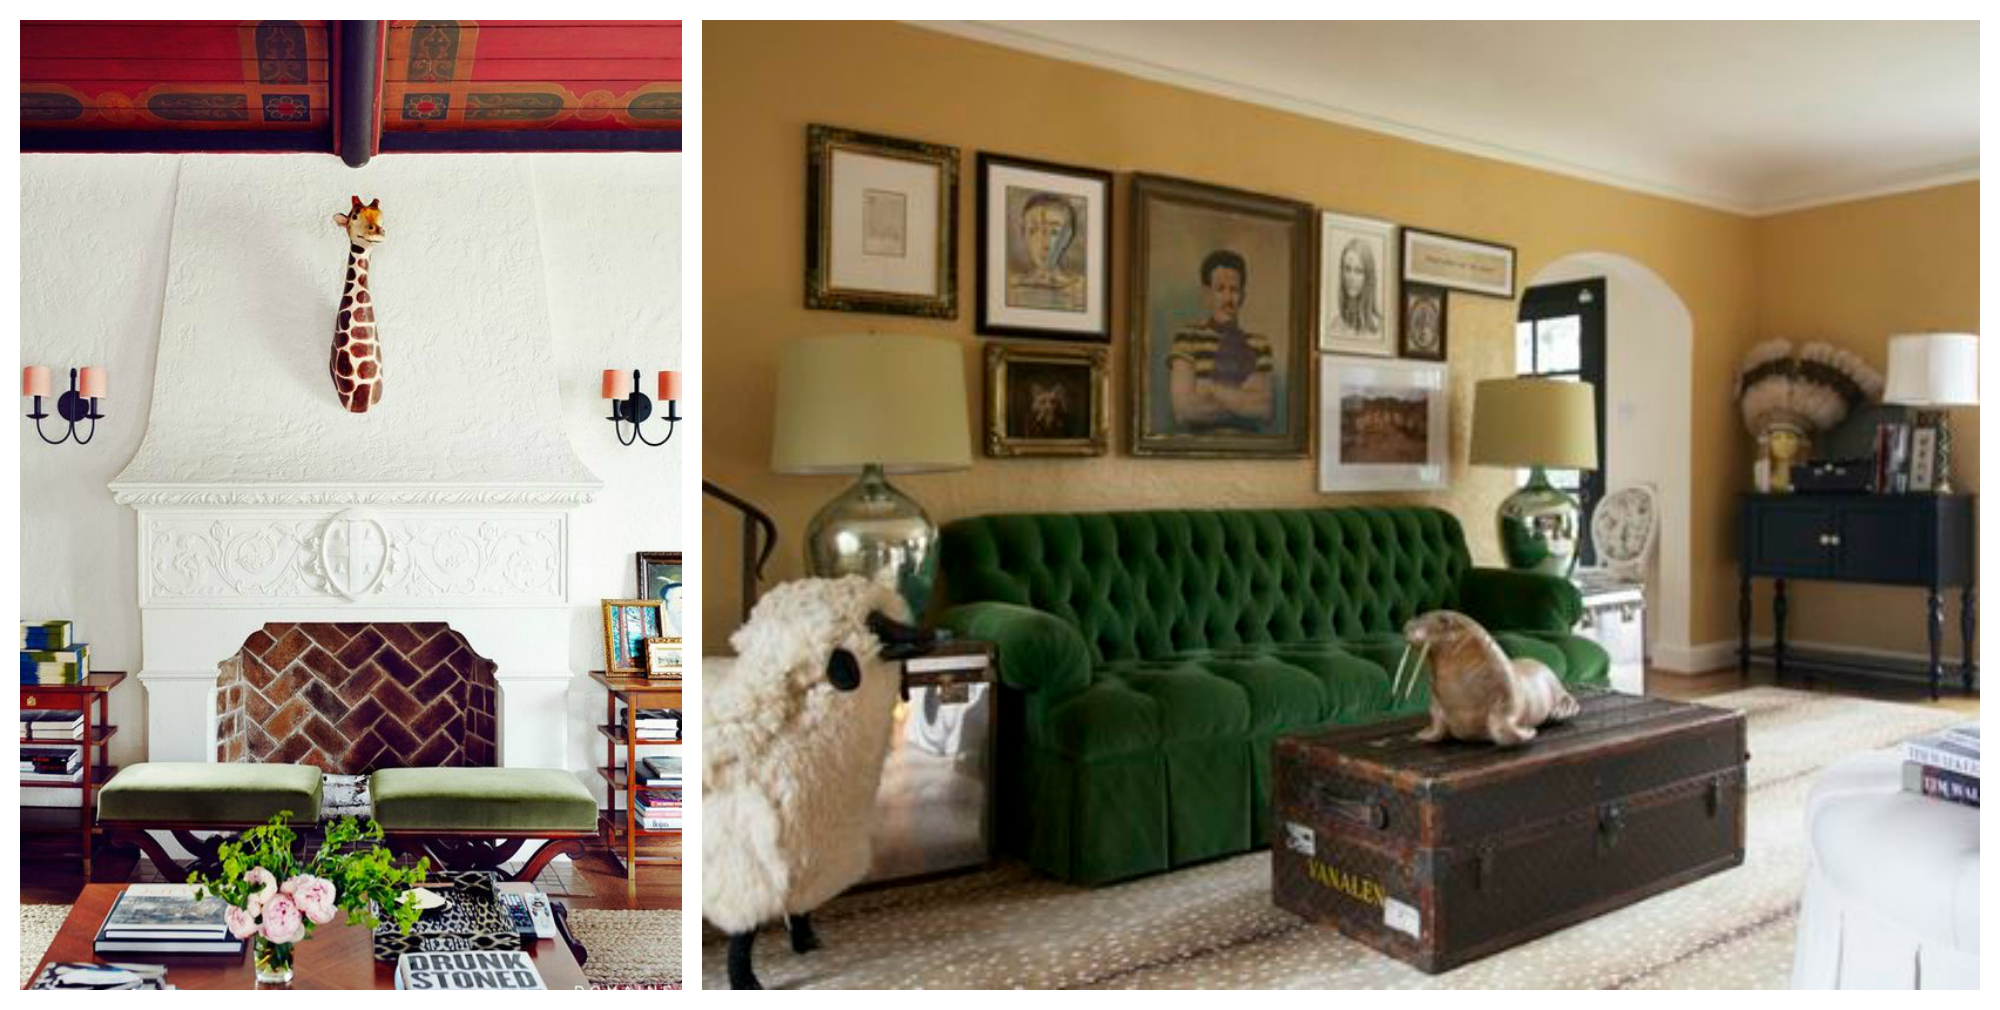 Right: A sheep, a walrus, a vintage trunk, and antelope print carpet? Honestly, it doesn't get any better.